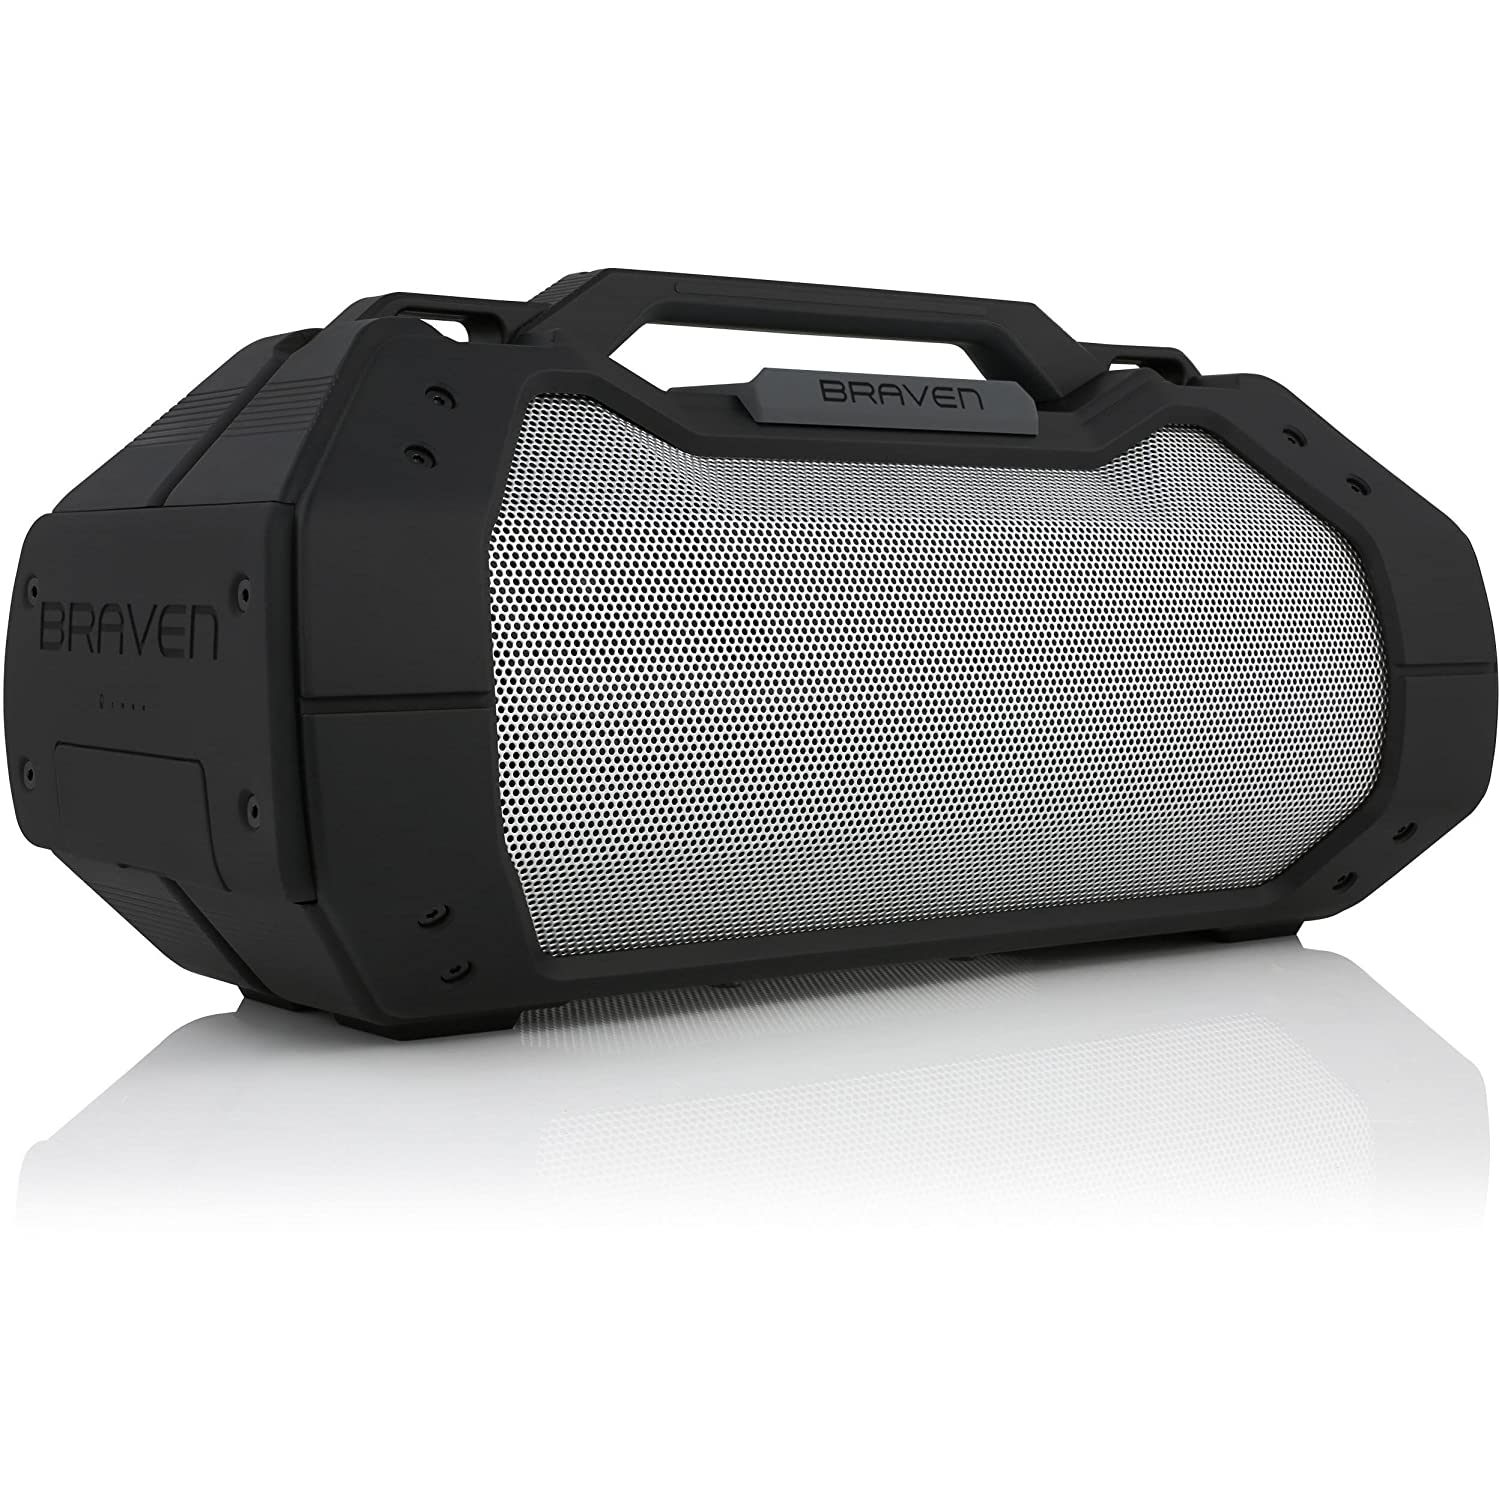 BRAVEN BRV-XXL Large Portable Wireless Bluetooth Speaker